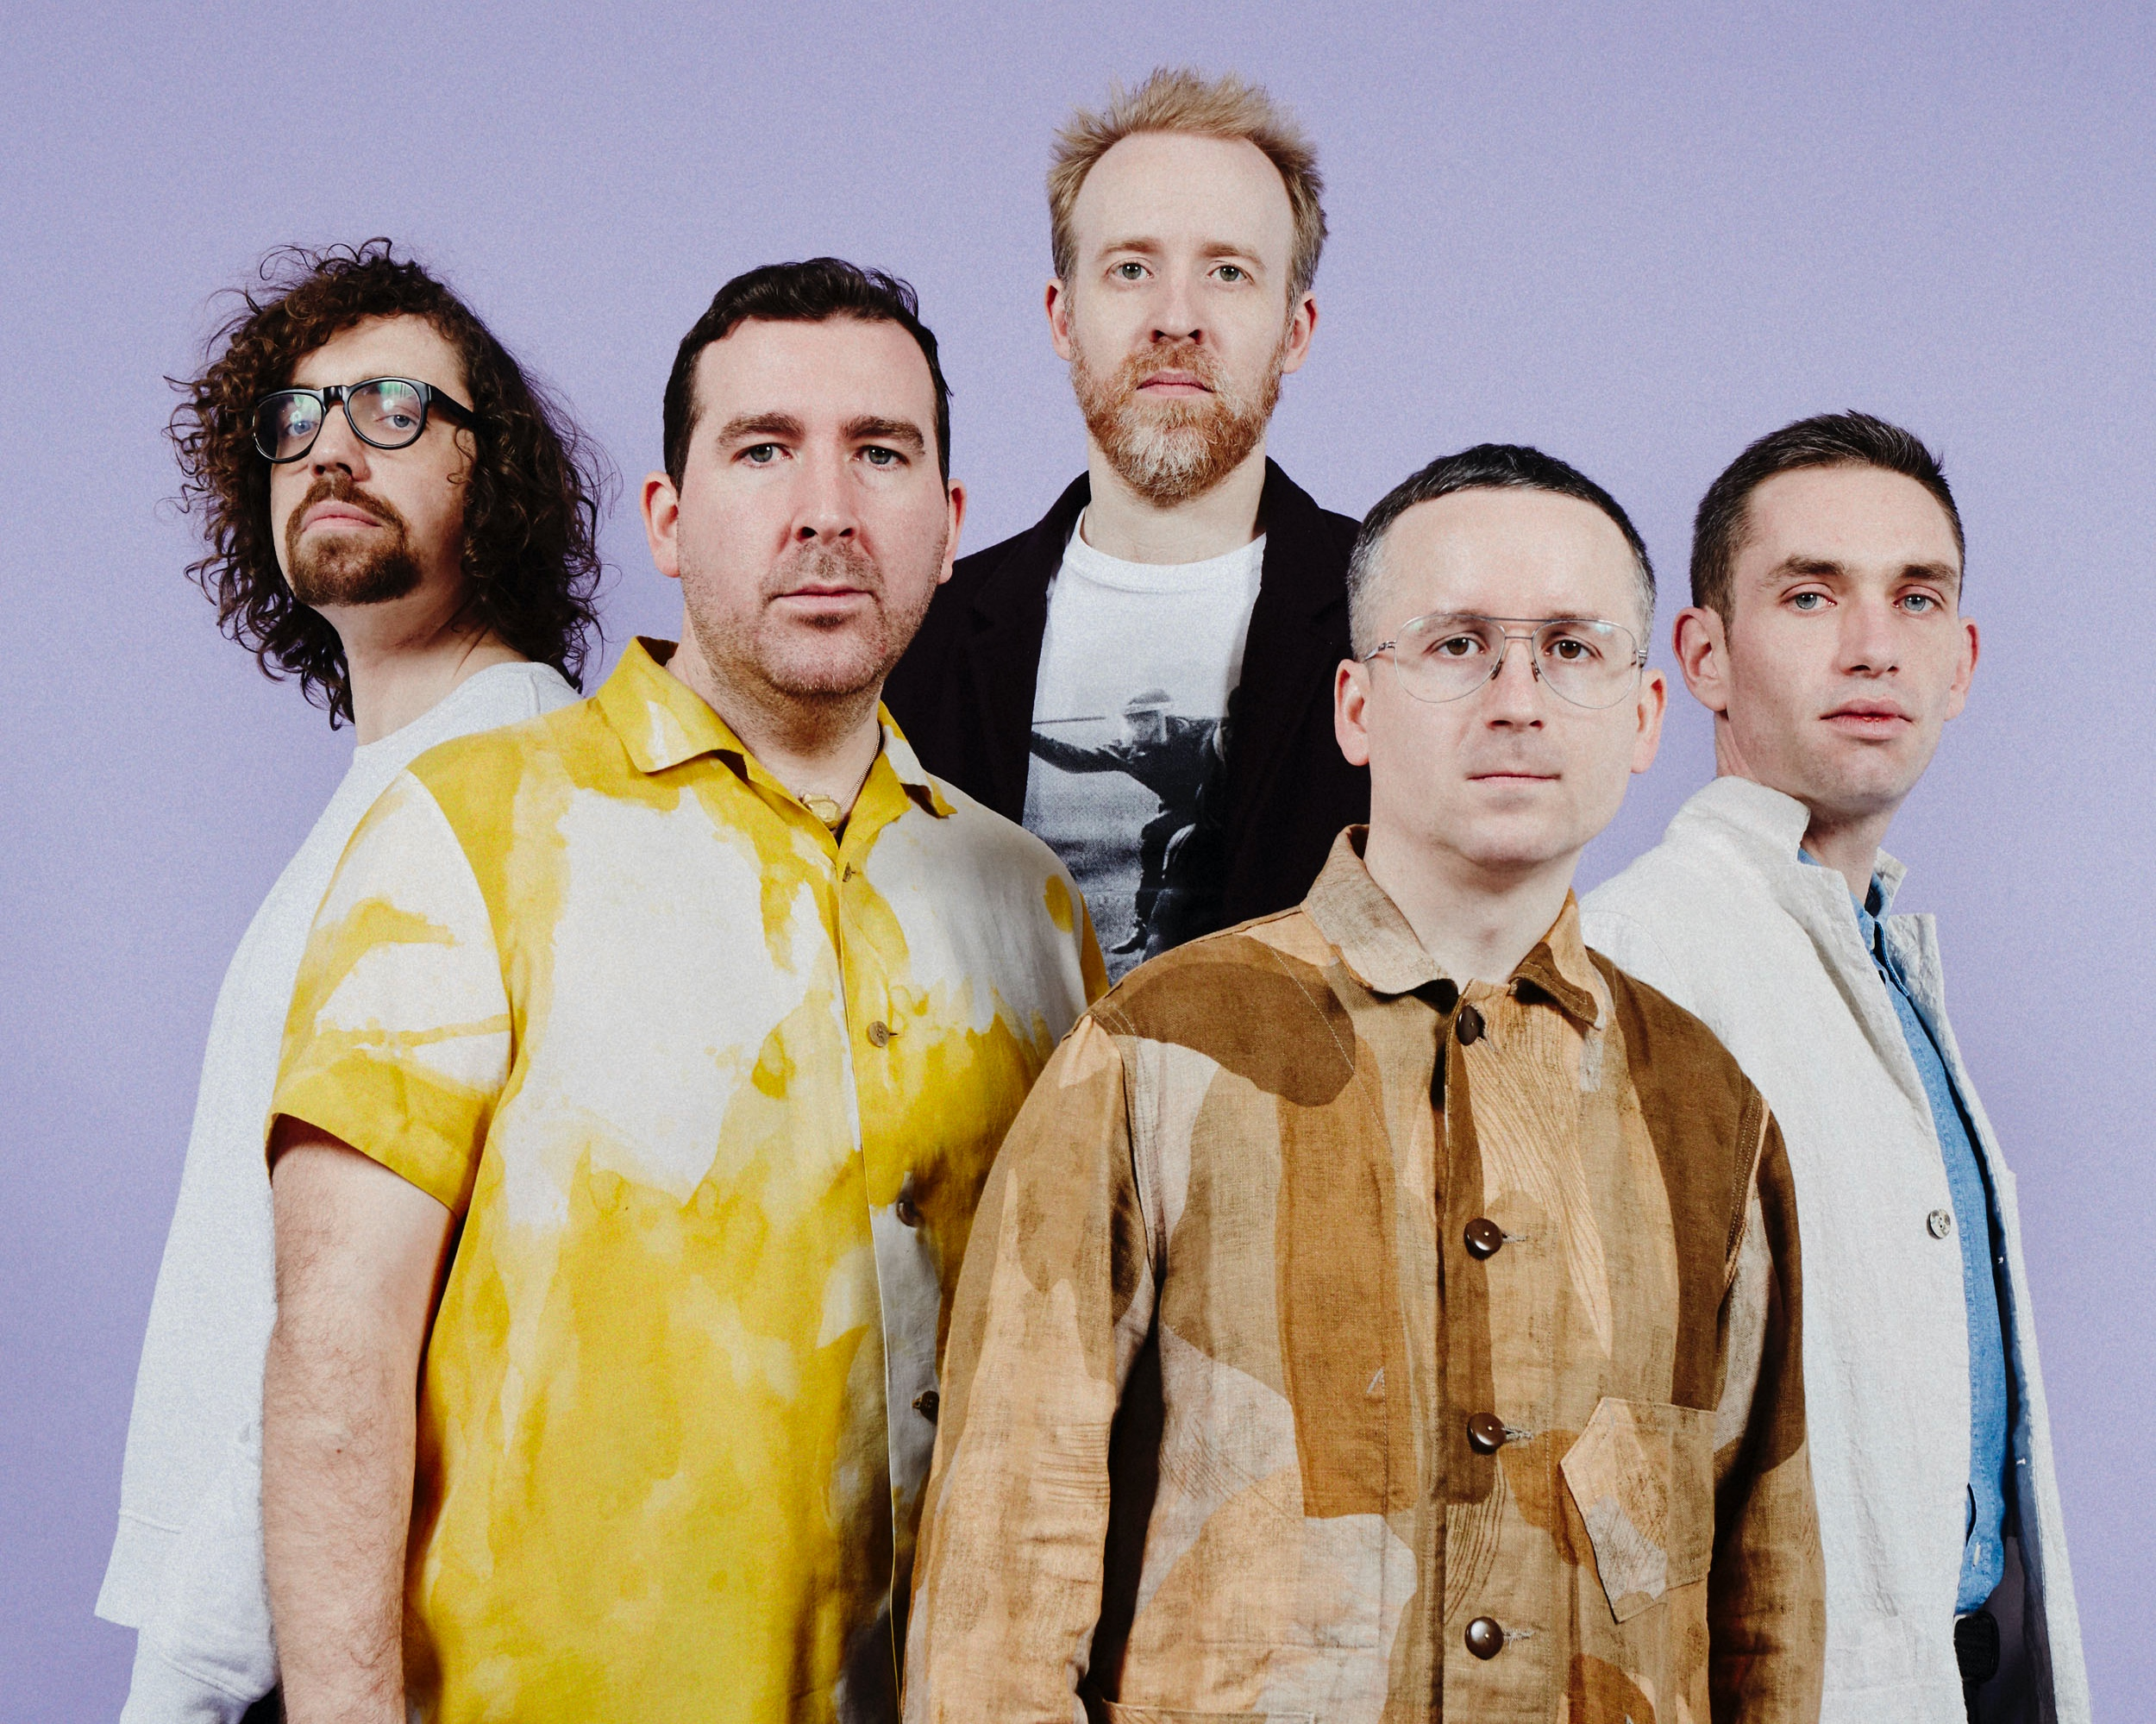 Les cinq membres du groupe Hot Chip, parmi lesquels Alexis Taylor (au premier plan). Photo Ronald DICK.